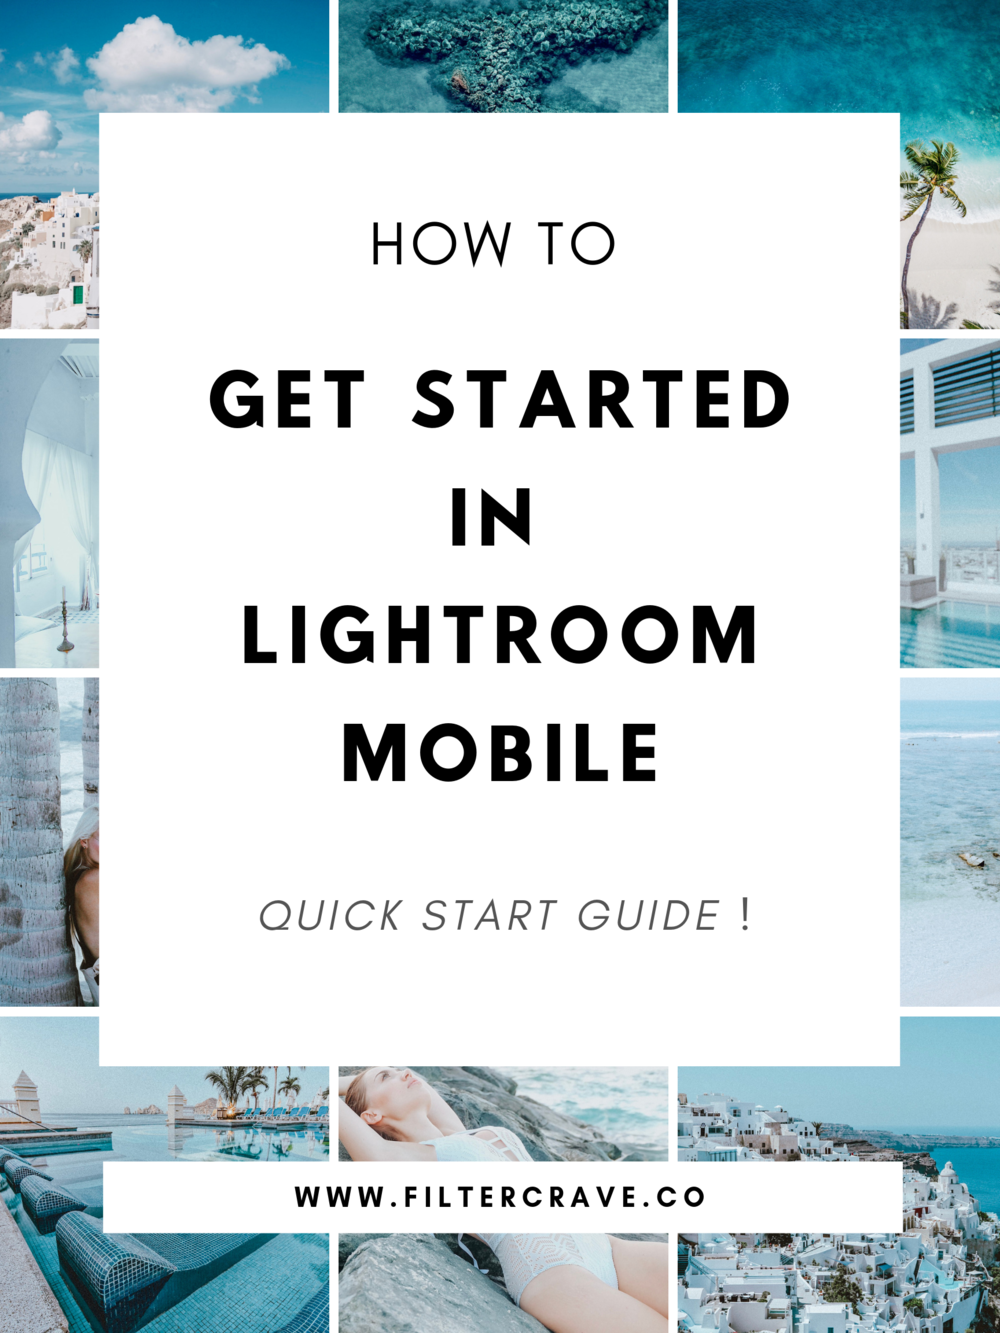 New to Lightroom Mobile? Dont worry, I created this quick start guide to the essential tools and features in Lightroom Mobile app. | Filtercrave Photography Tips + Lightroom Presets #lightroompresets #mobilepresets #lightroomtips #photographytips #blogger